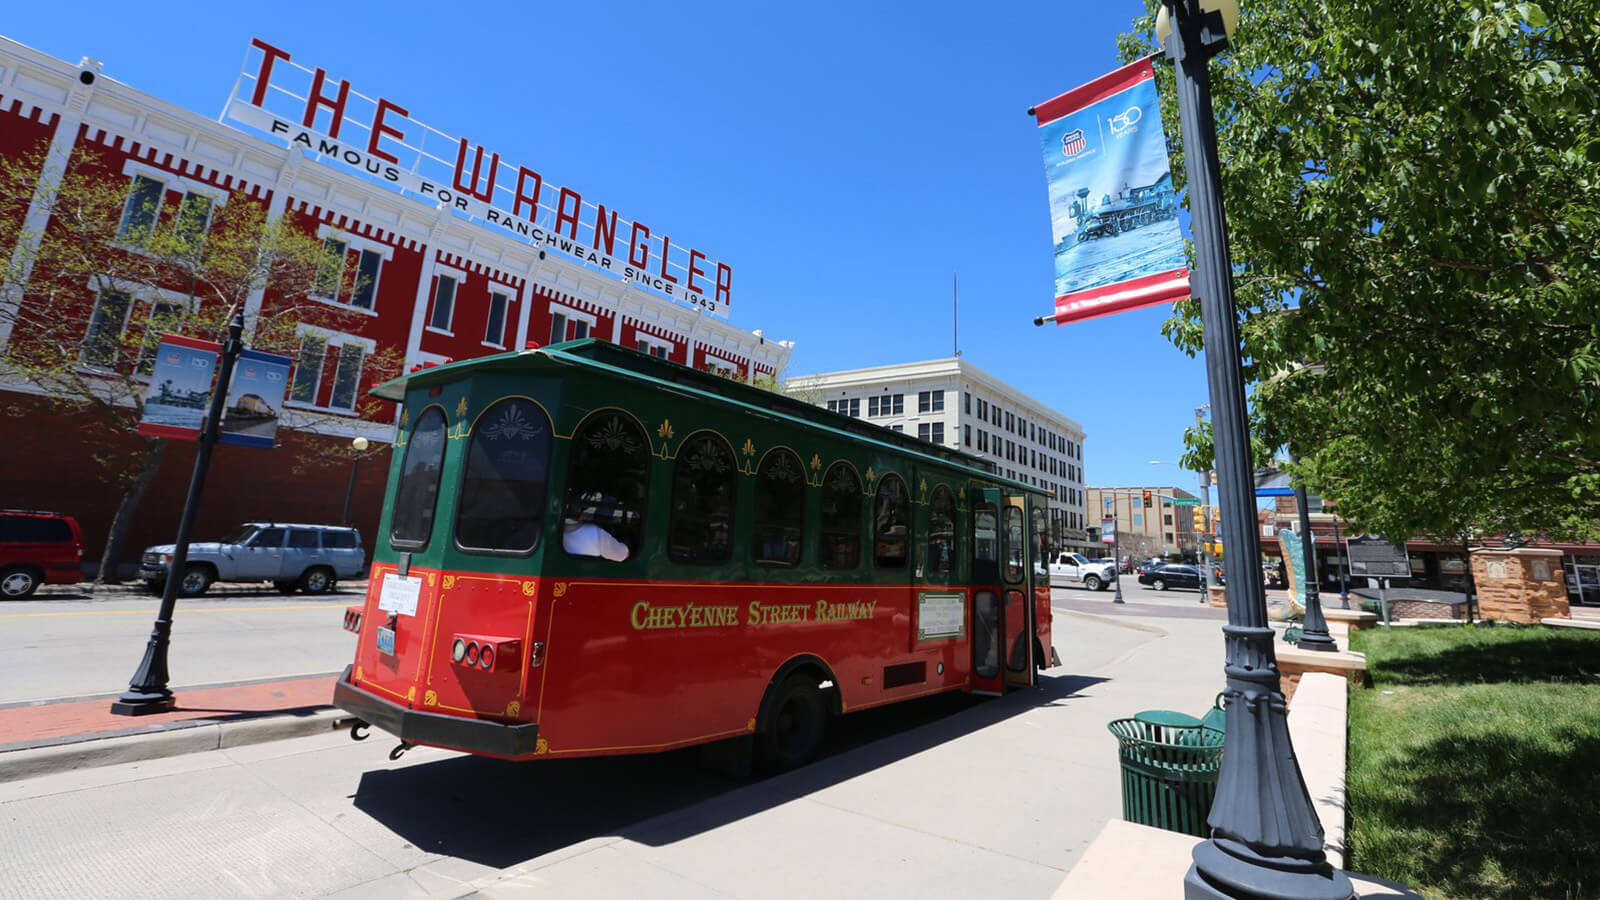 downtown trolley in front of building